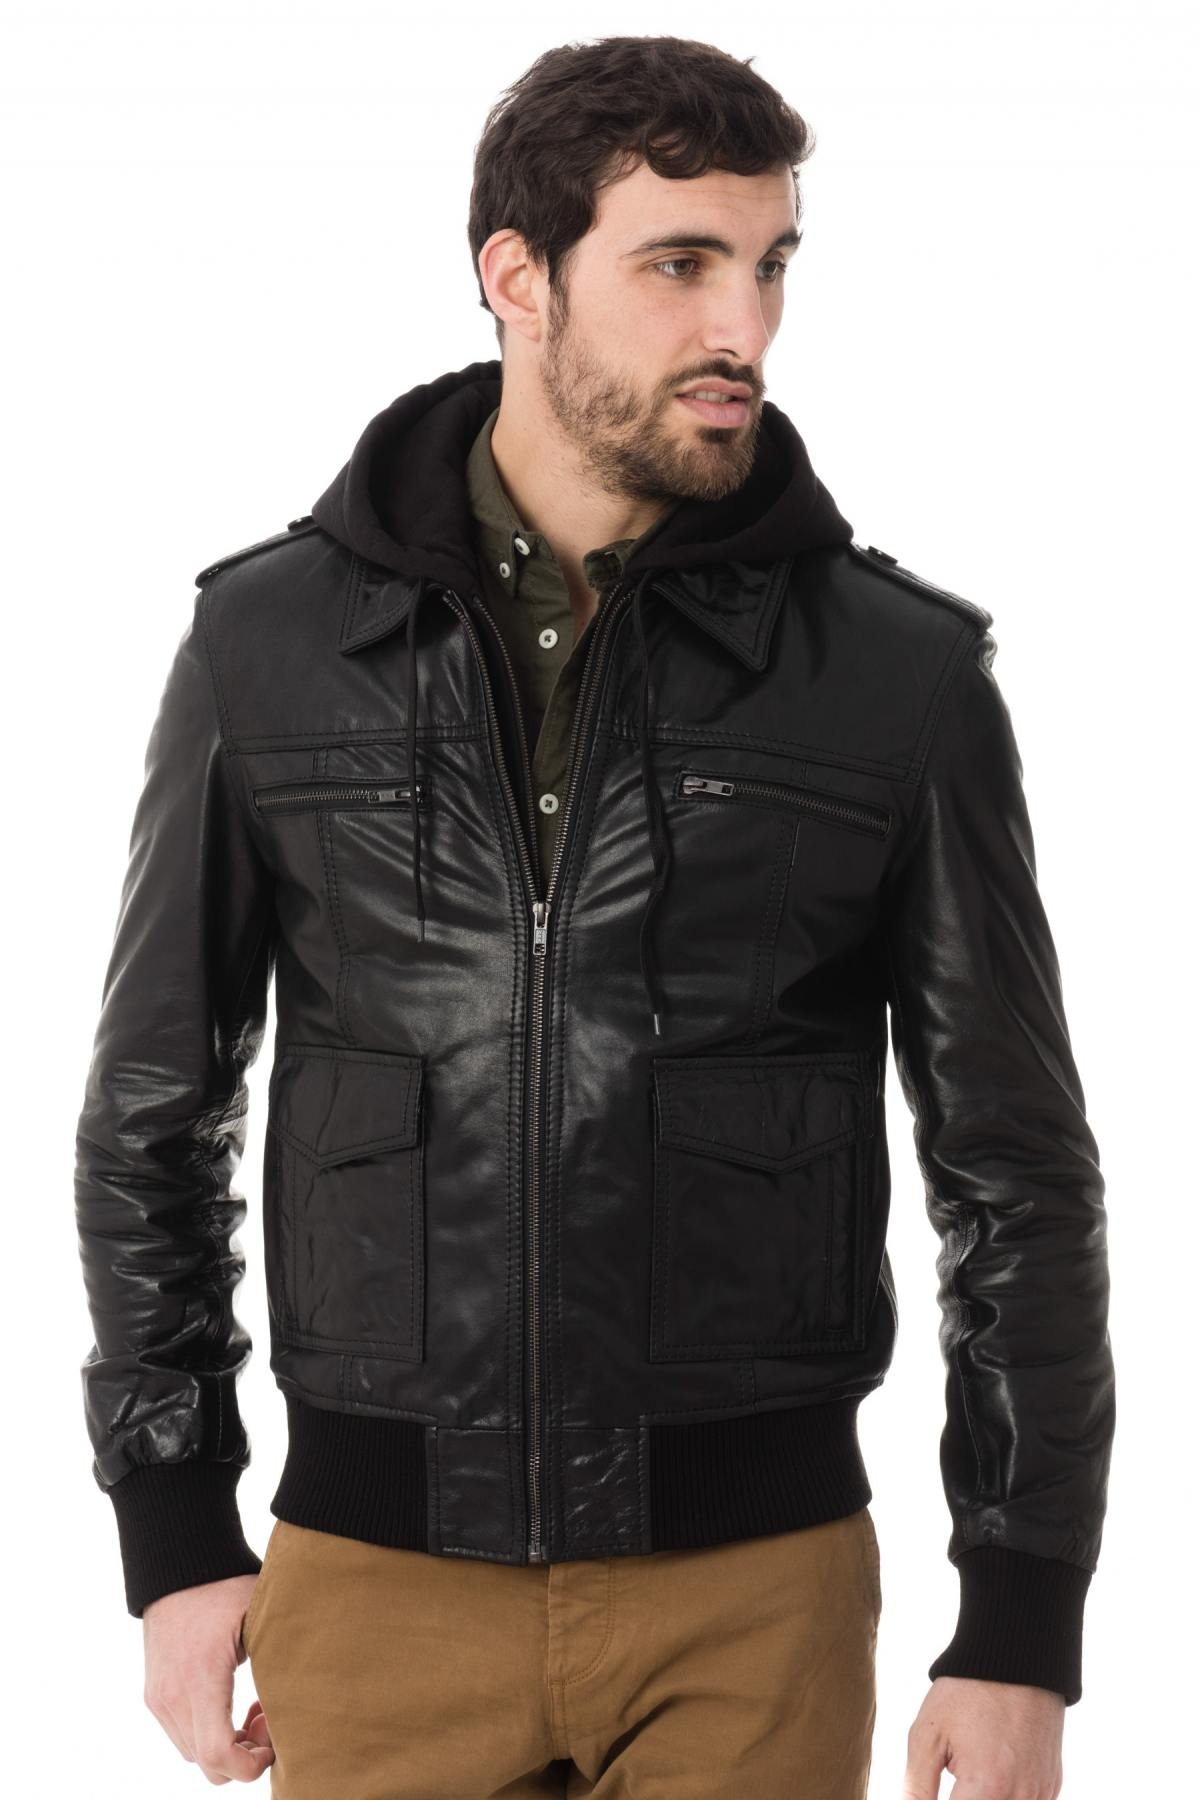 668fb26cae6 Blousons Cuir Homme Aspect Brillant - Cuir-city